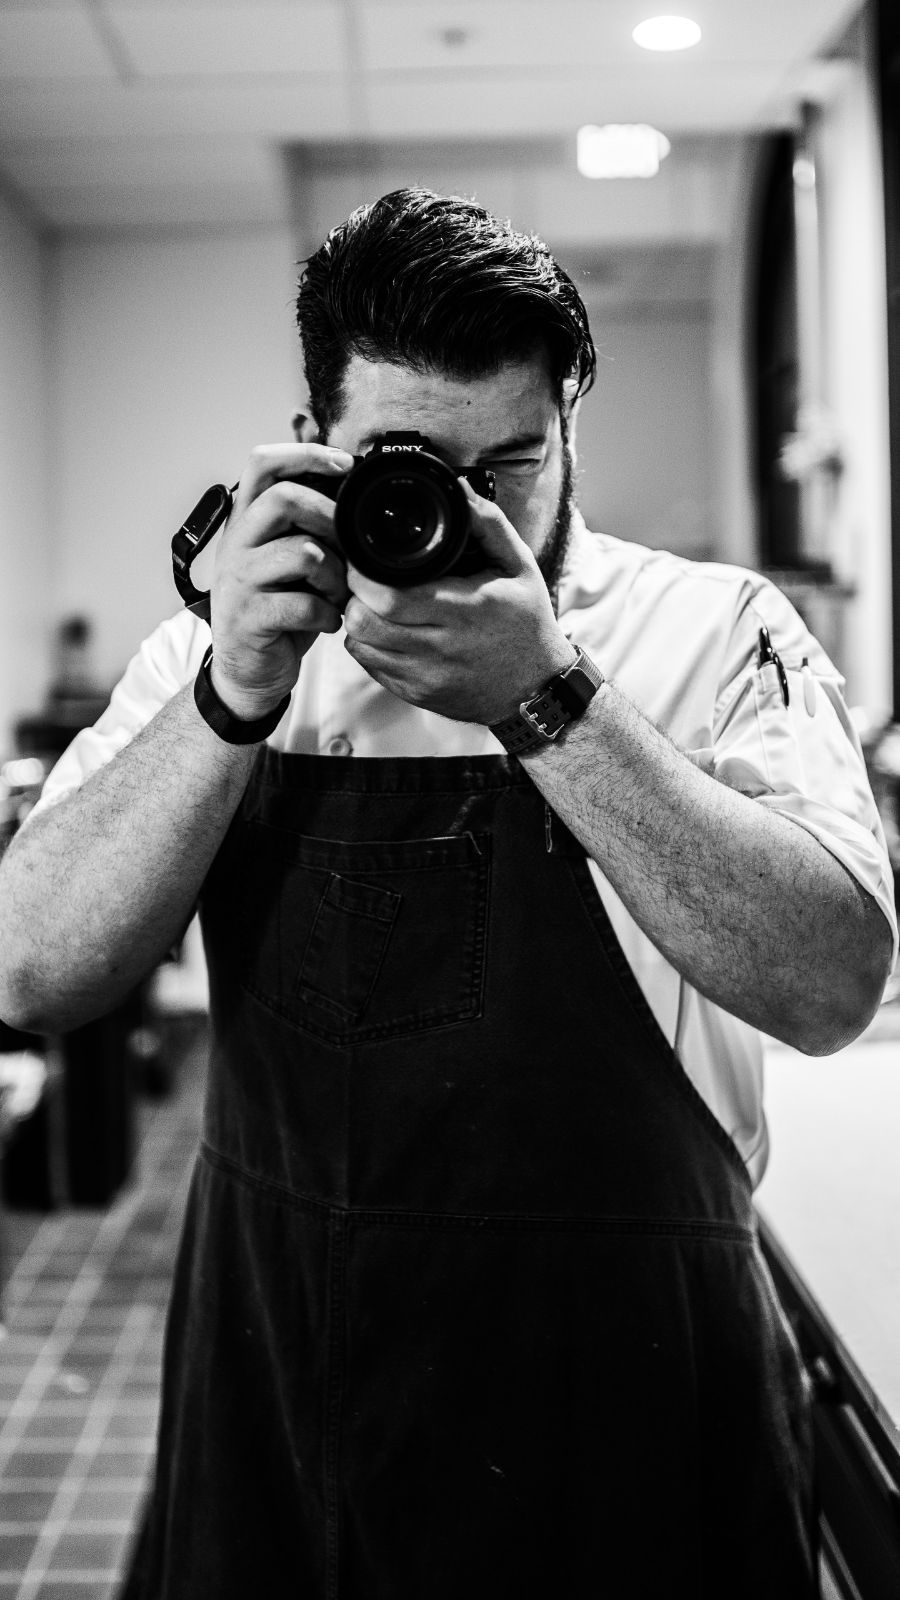 Photographer/Chef Robert Reyes of Lionfish San Diego